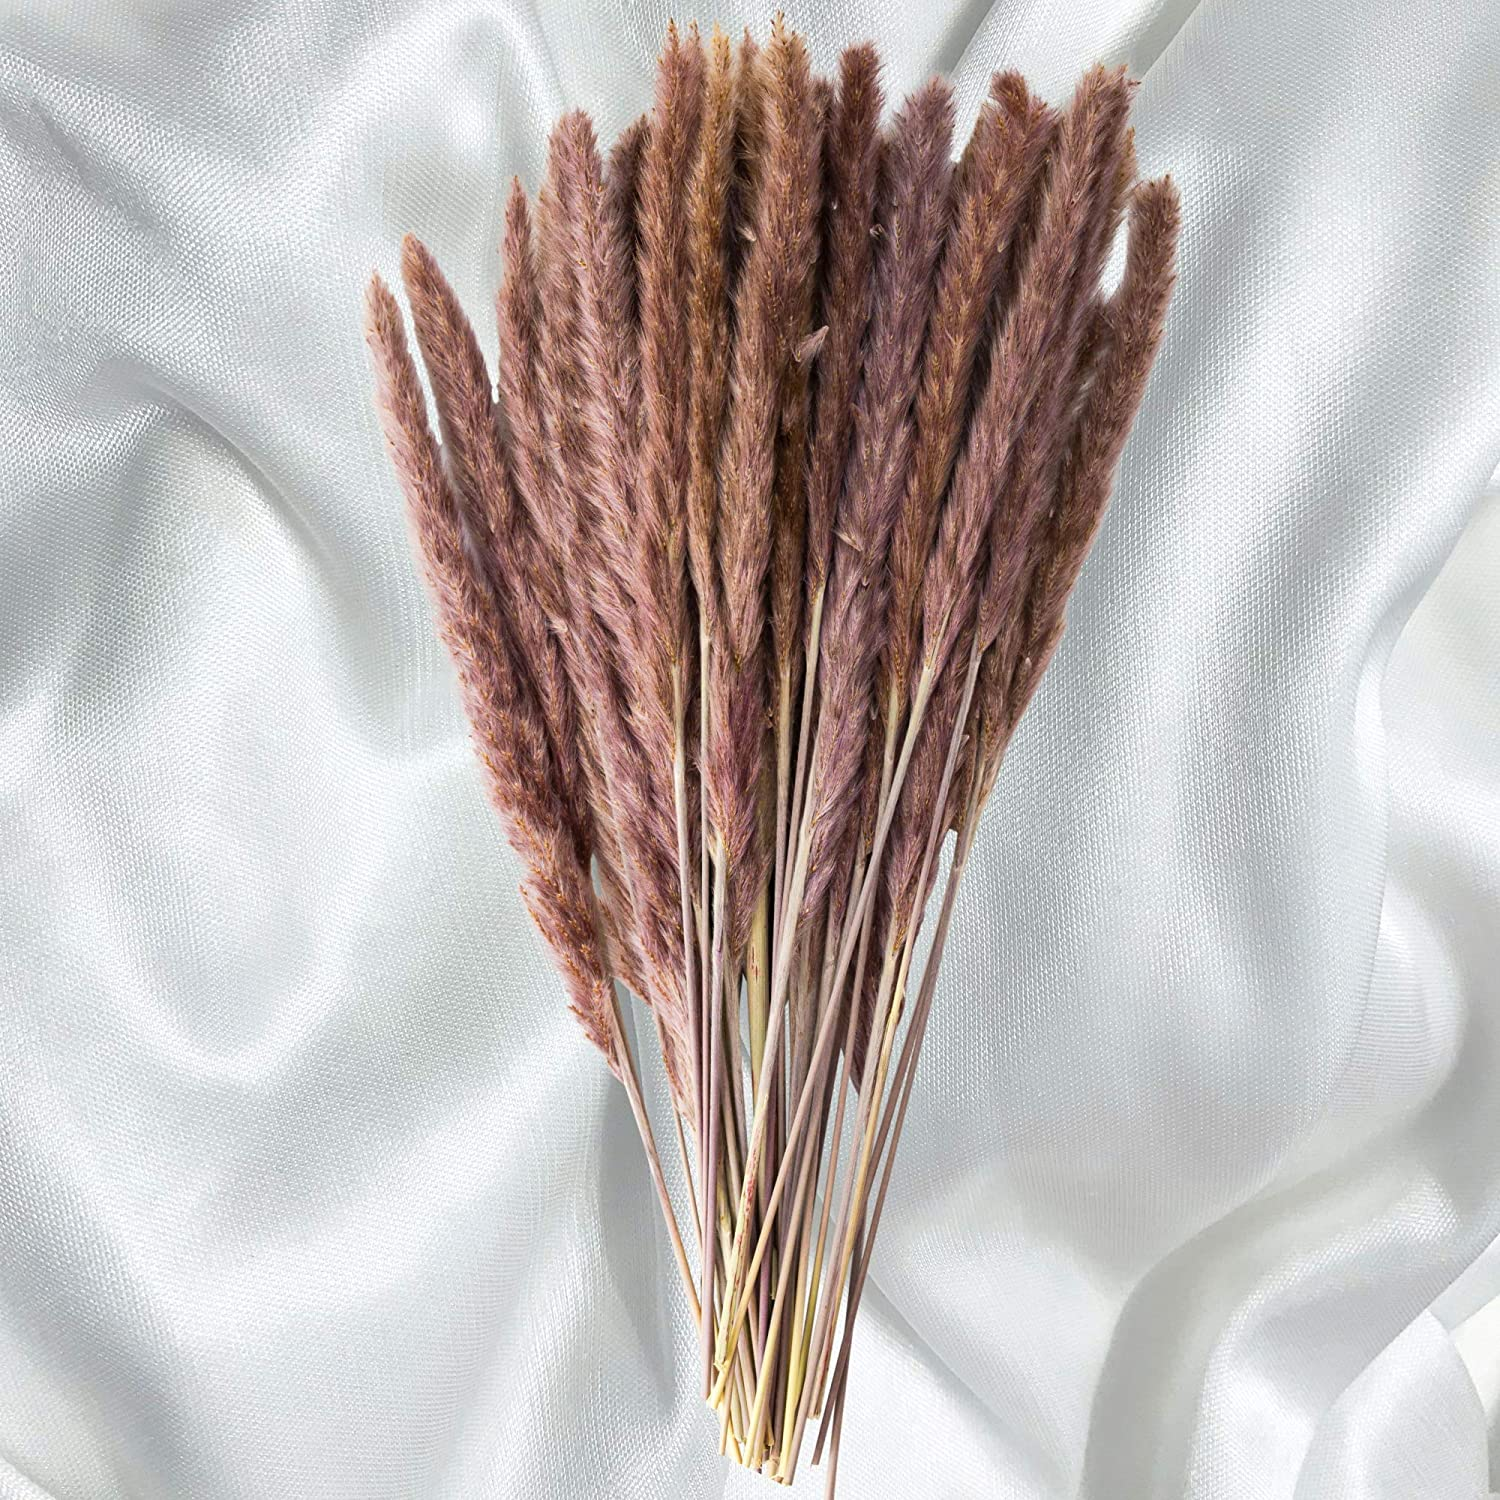 40 Pack GlamStems Natural Dried Pampas Grass Decor 18in w/ Box | Pampas Grass Large | Pampas Grass Small | Dry Pampas Grass | Small Pampas Grass Tall | Pampas Grass Decor Tall Fluffy | Dried Grass